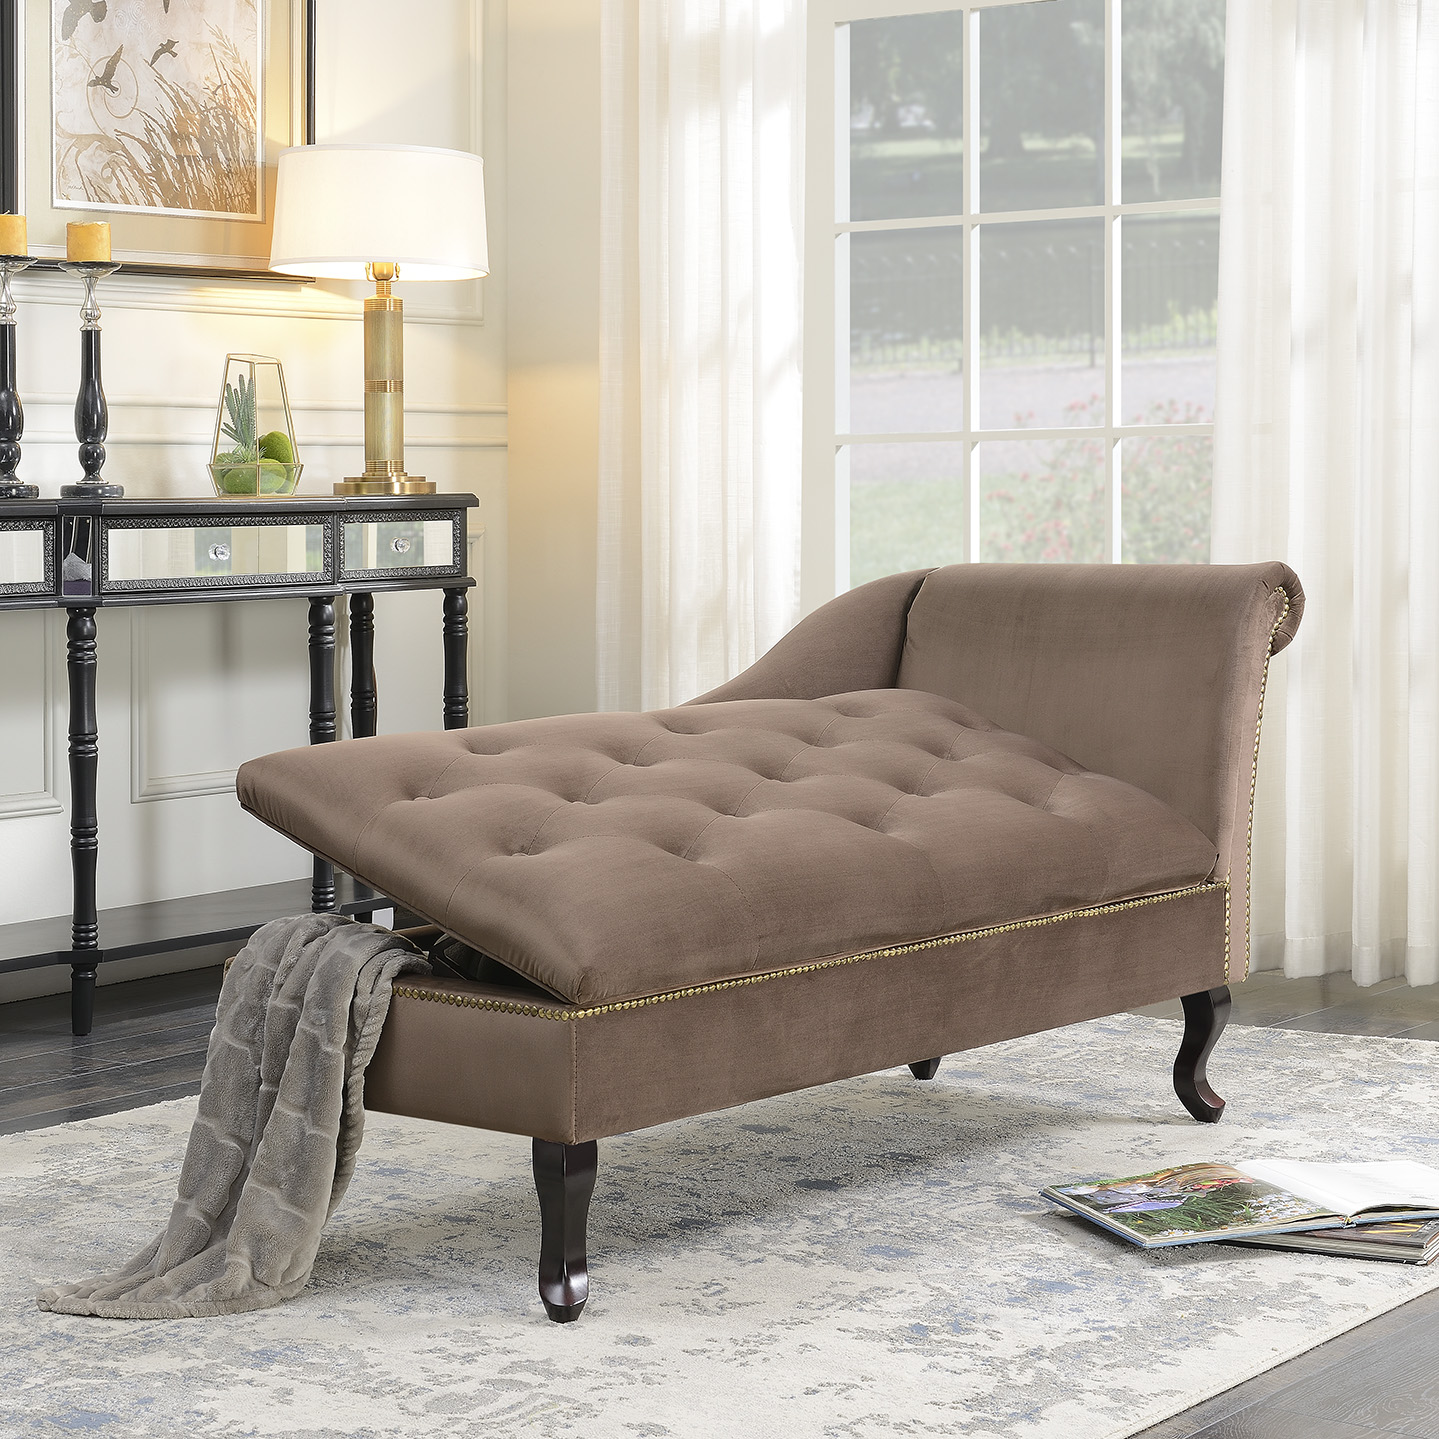 Product Image Belleze Velveteen Tufted Chaise Lounge Chair Couch for Living  Room Nailhead Trim with Storage, Brown